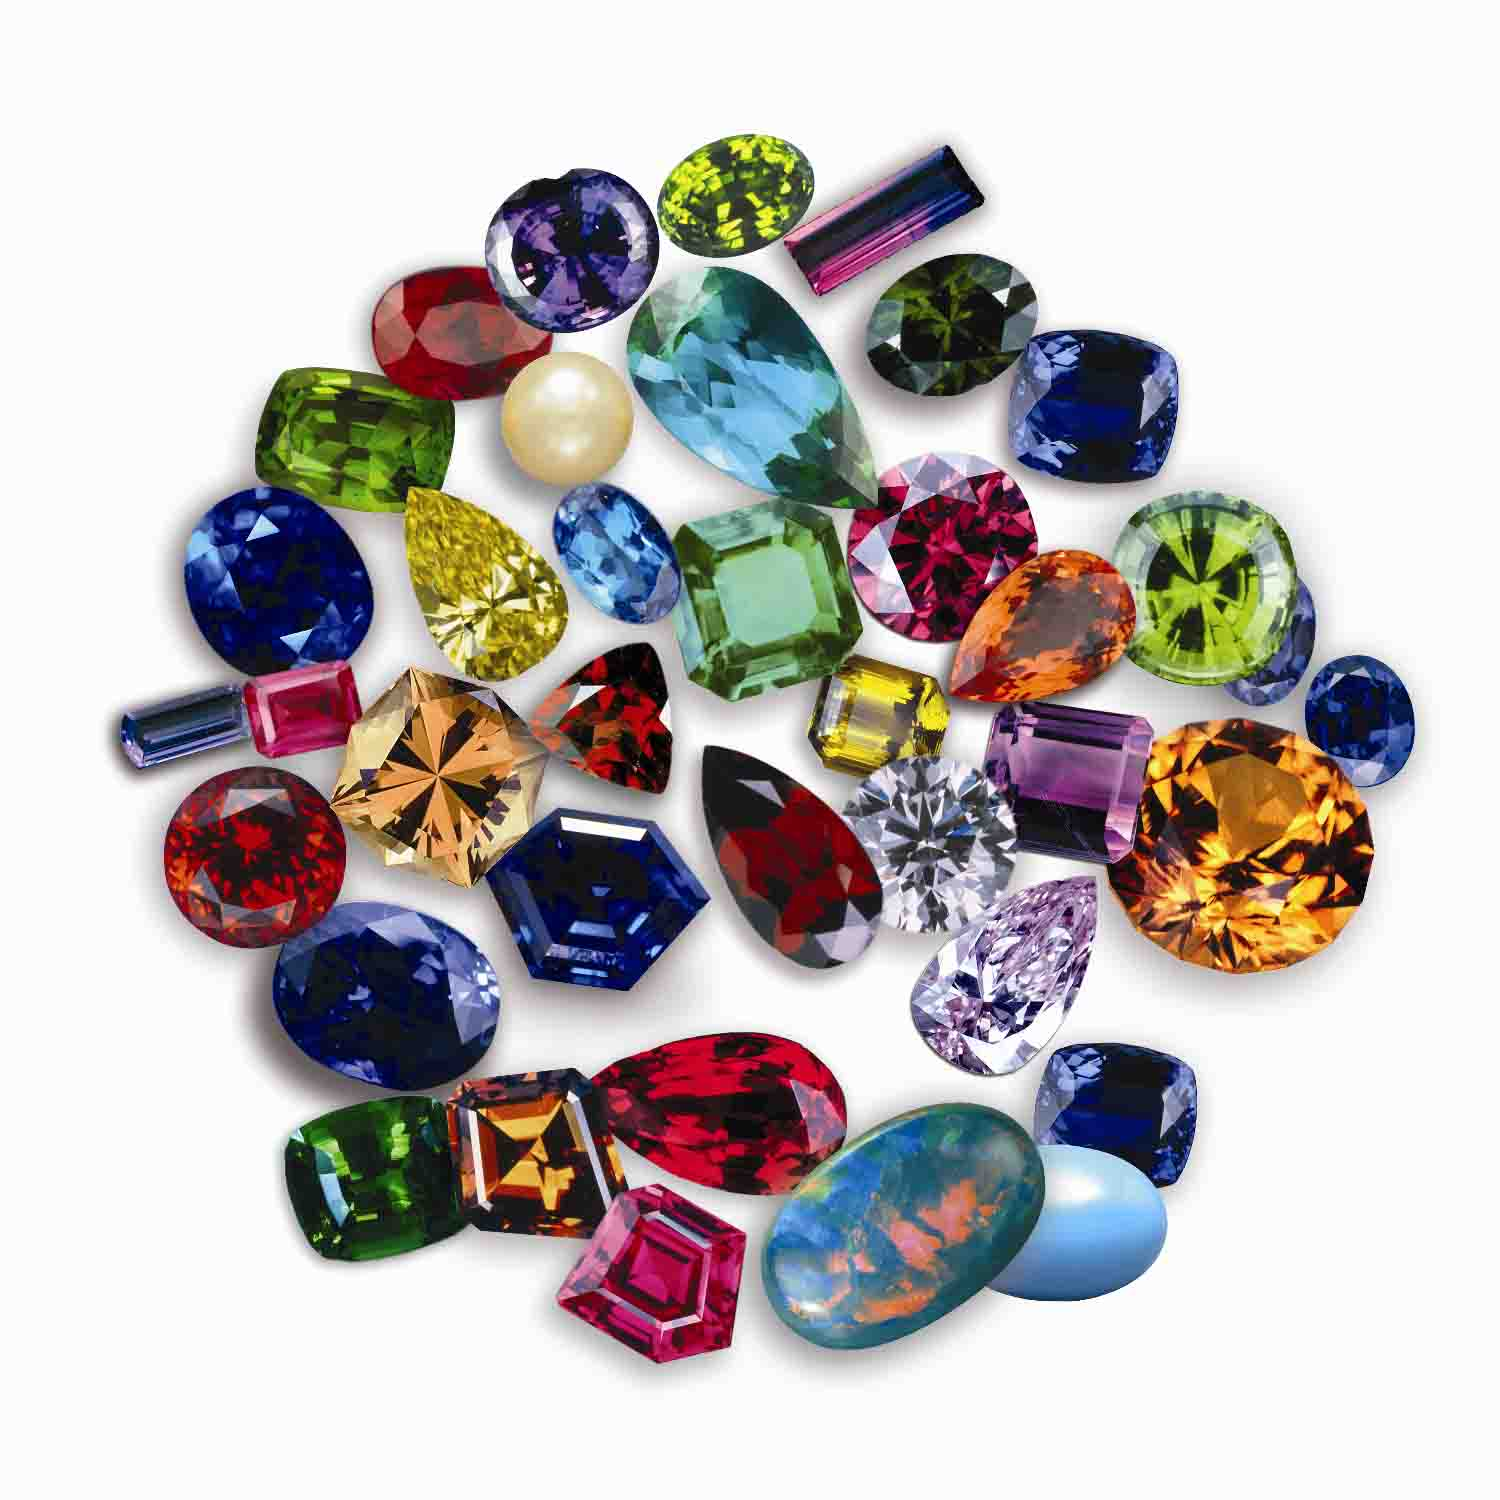 Gemstone Mining Methods jewelinfo4u Gemstones and Jewellery